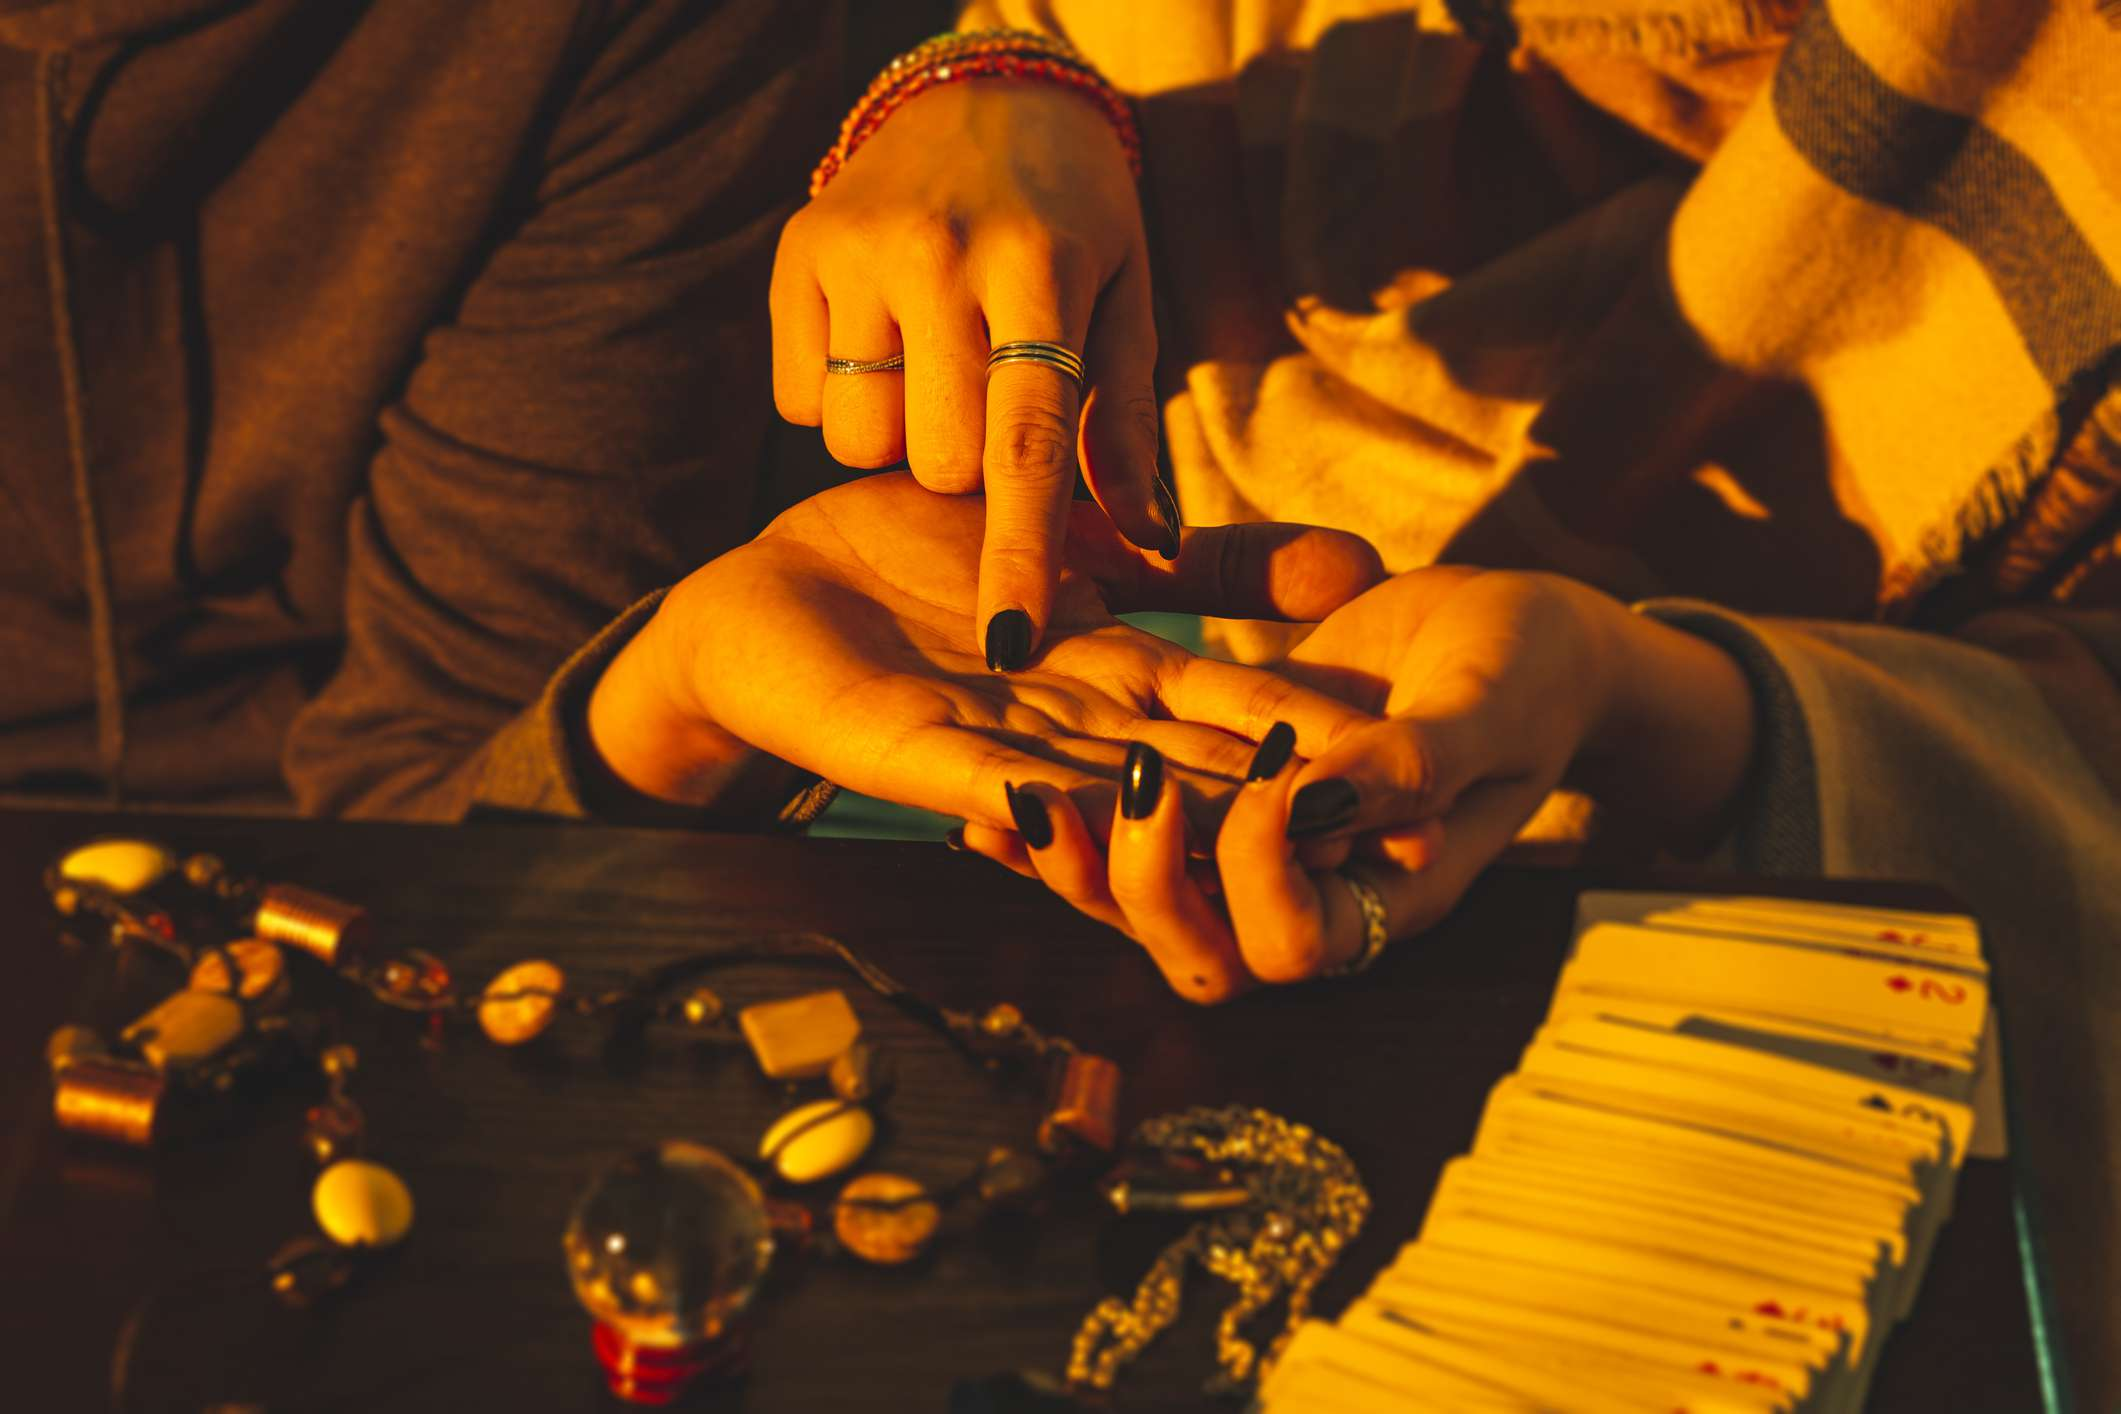 Palm reader holding a person's hand, pointing out palm lines